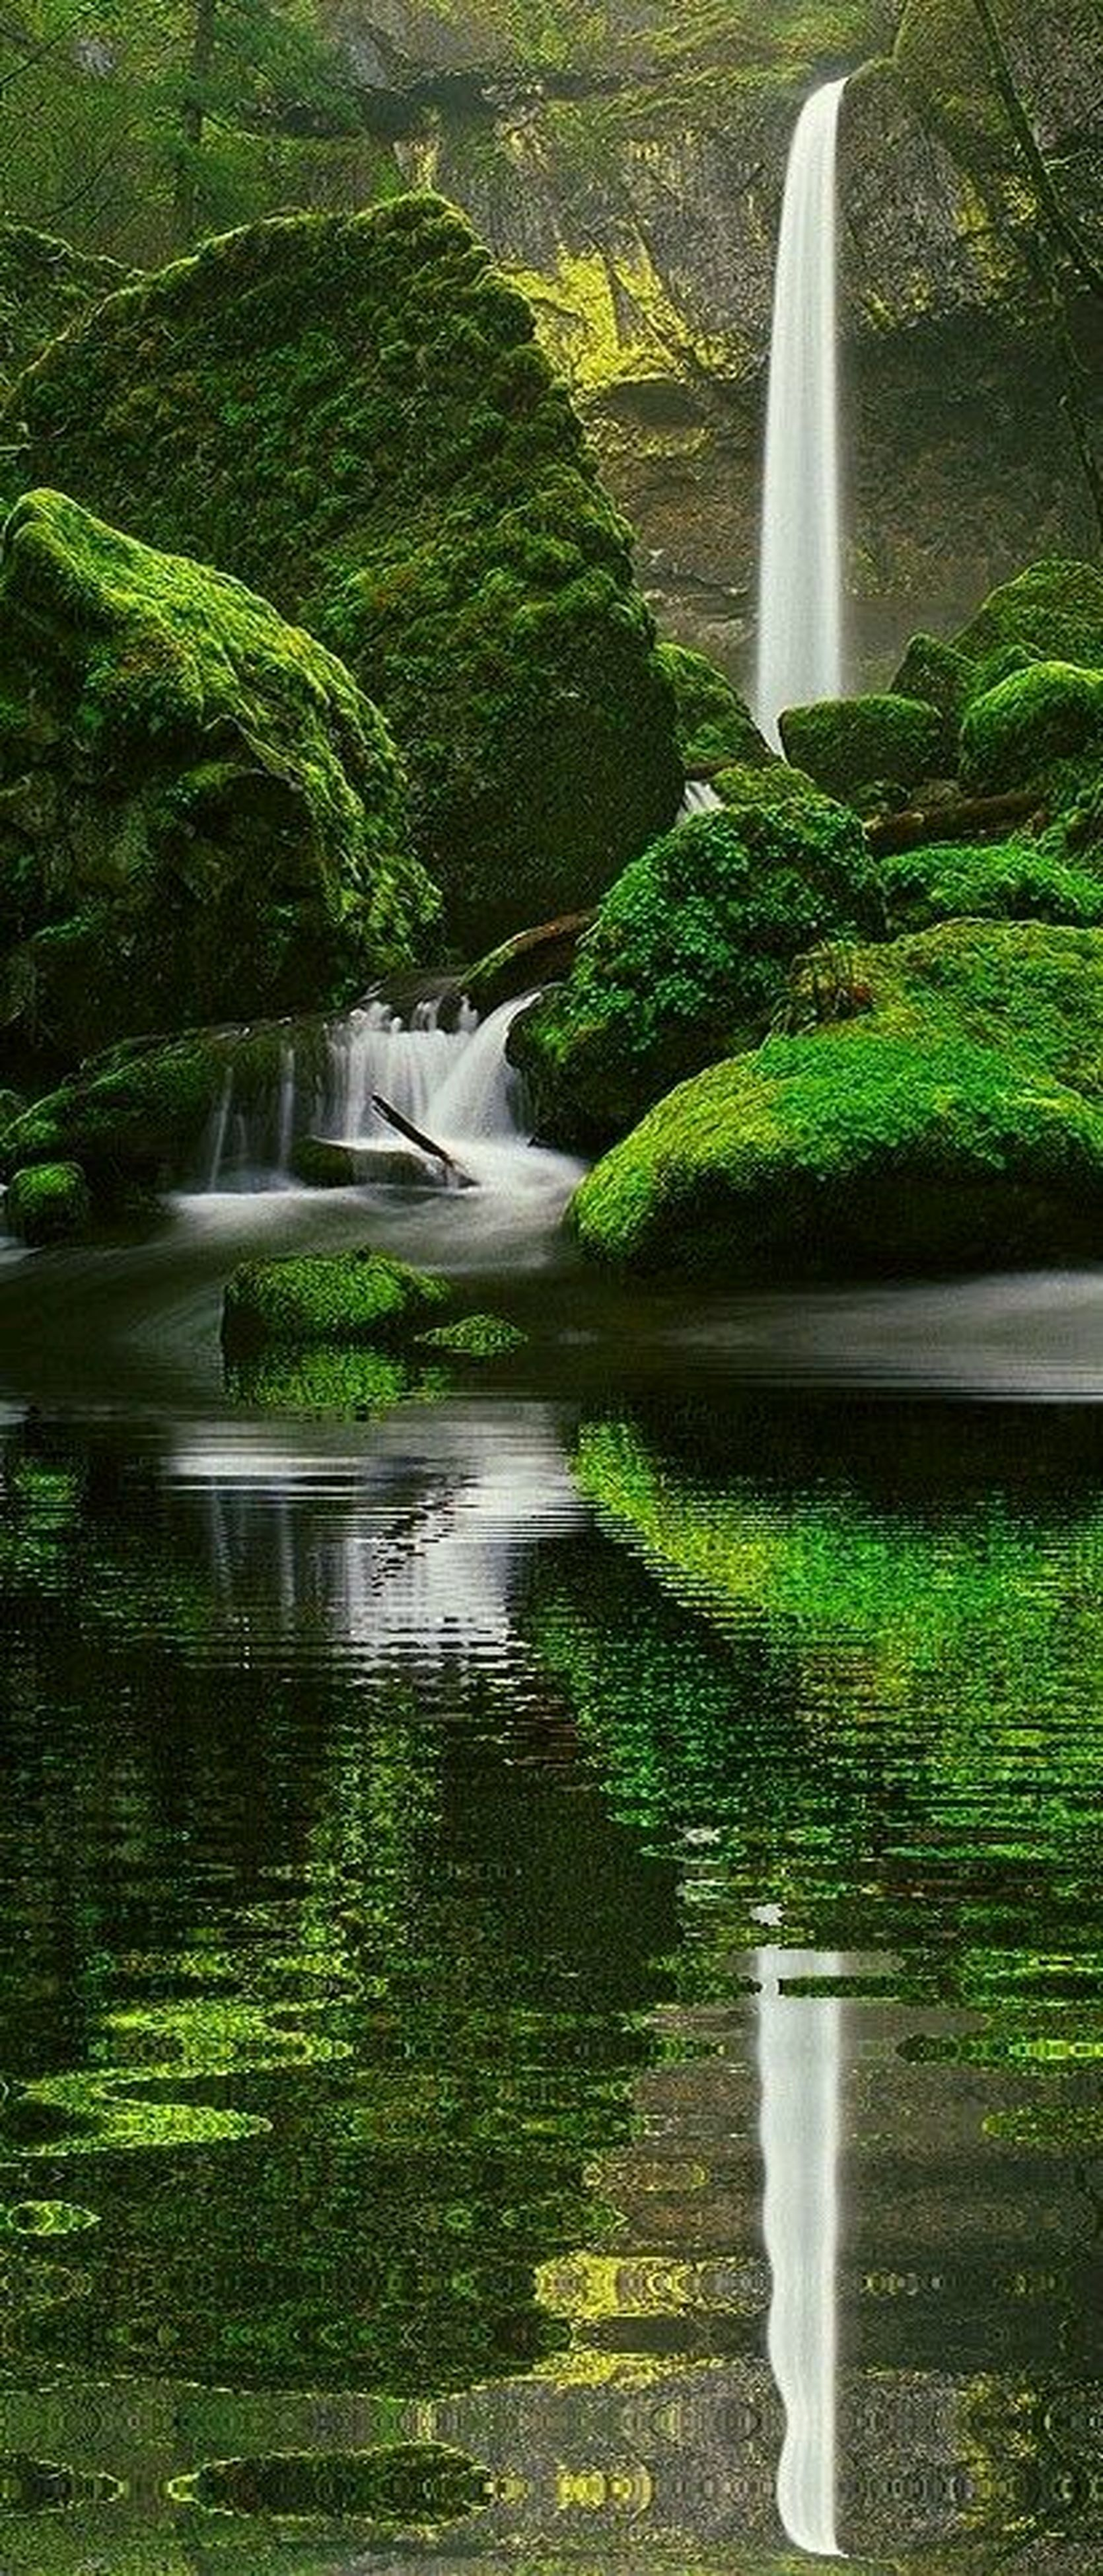 green color, waterfall, water, flowing water, tree, motion, plant, flowing, growth, nature, beauty in nature, grass, long exposure, lush foliage, scenics, green, fountain, forest, day, outdoors